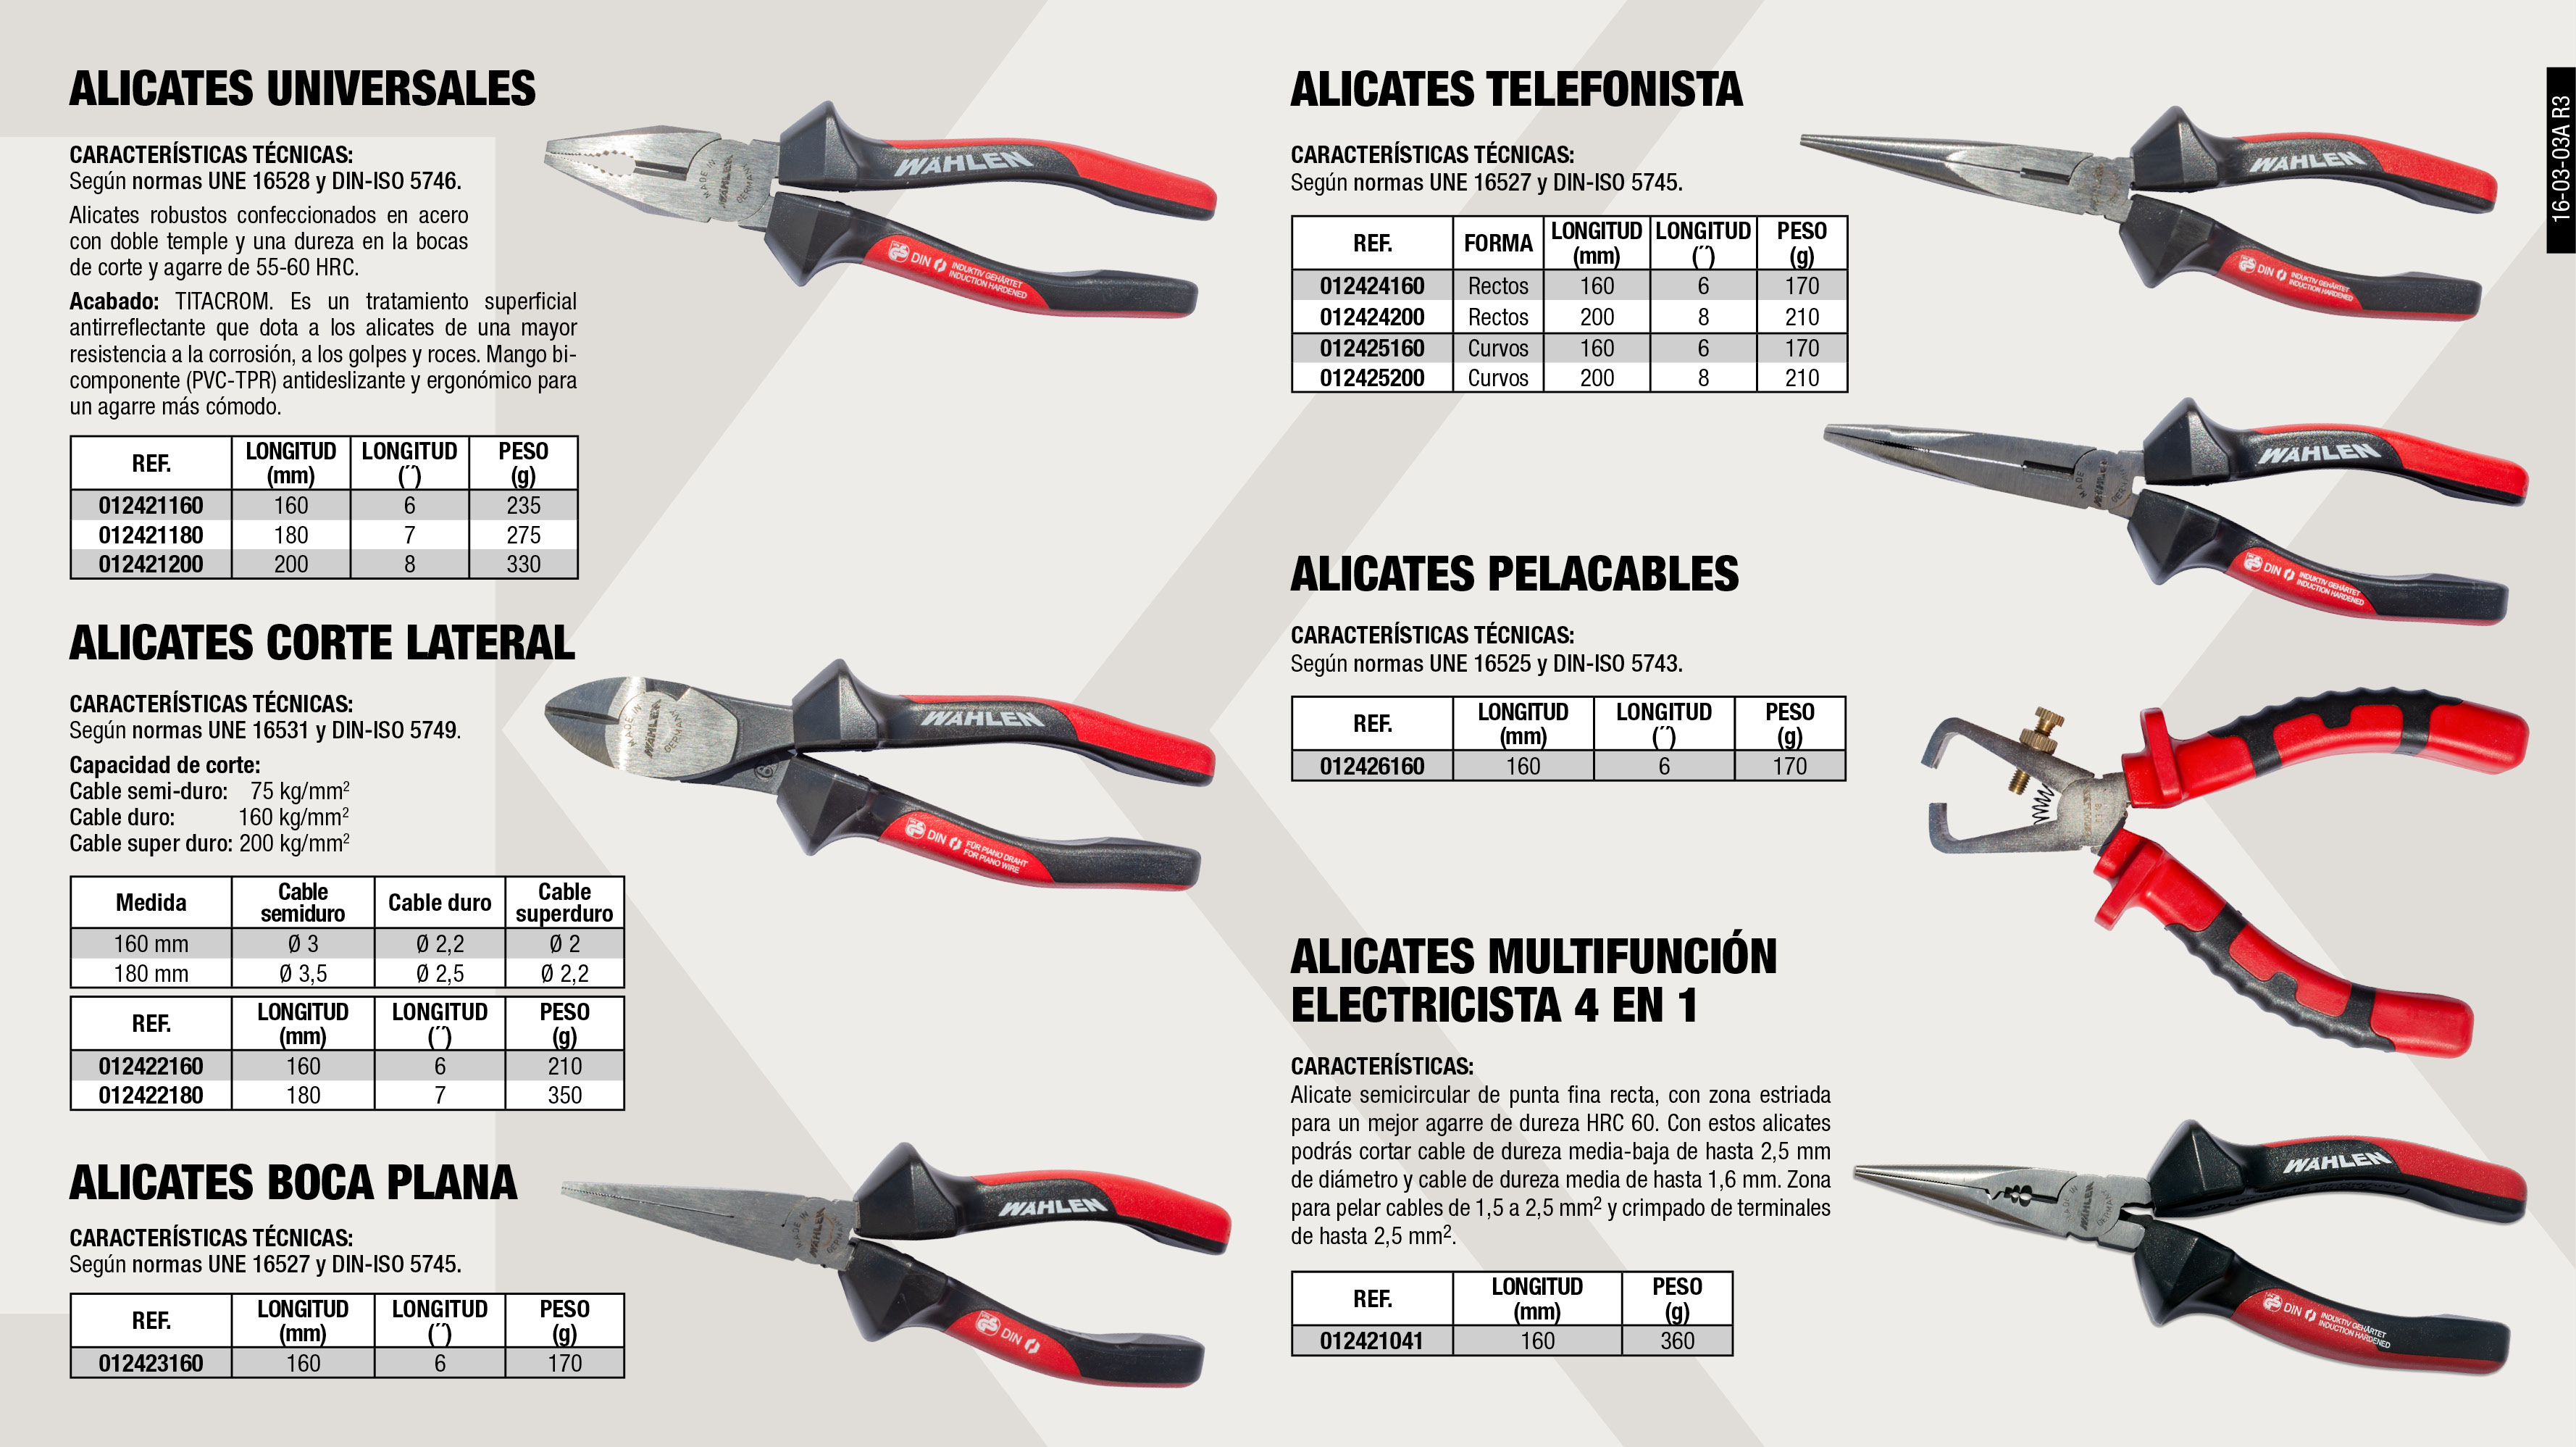 ALICATE TELEFONISTA 200MM 8''                               ,  									ALICATE BOCA PLANA 160MM 6''                                ,  									ALICATE UNIVERSAL 160MM 6''                                 ,  									ALICATE TELEFONISTA 160MM 6´´                               ,  									ALICATE PELACABLE AUTOMATICO 160MM 6''                      ,  									ALICATE UNIVERSAL 200MM 8''                                 ,  									ALICATE CORTE LATERAL 180MM 7''                             ,  									ALICATE TELEFONISTA CURVO 200MM 8''                         ,  									ALICATE CORTE LATERAL 160MM 6''                             ,  									ALICATE MULTIFUNCIÓN ELECTRICISTA 4 EN 1                    ,  									ALICATE UNIVERSAL 180MM 7''                                 ,  									ALICATE TELEFONISTA CURVO 160MM 6''                         ,